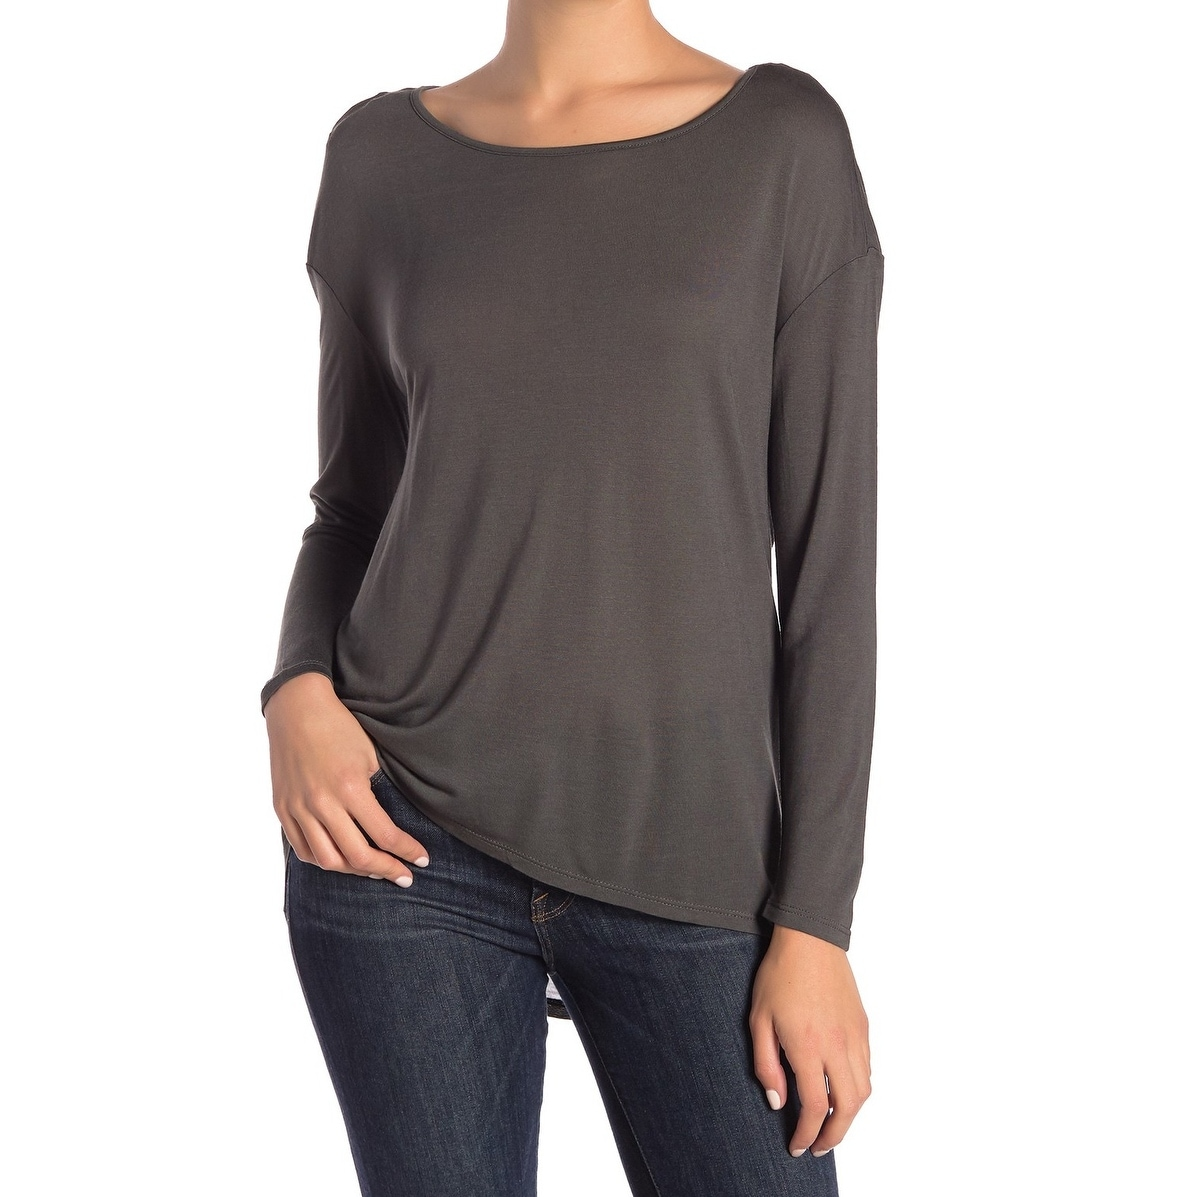 83f0e763a 14th & Union Tops | Find Great Women's Clothing Deals Shopping at Overstock